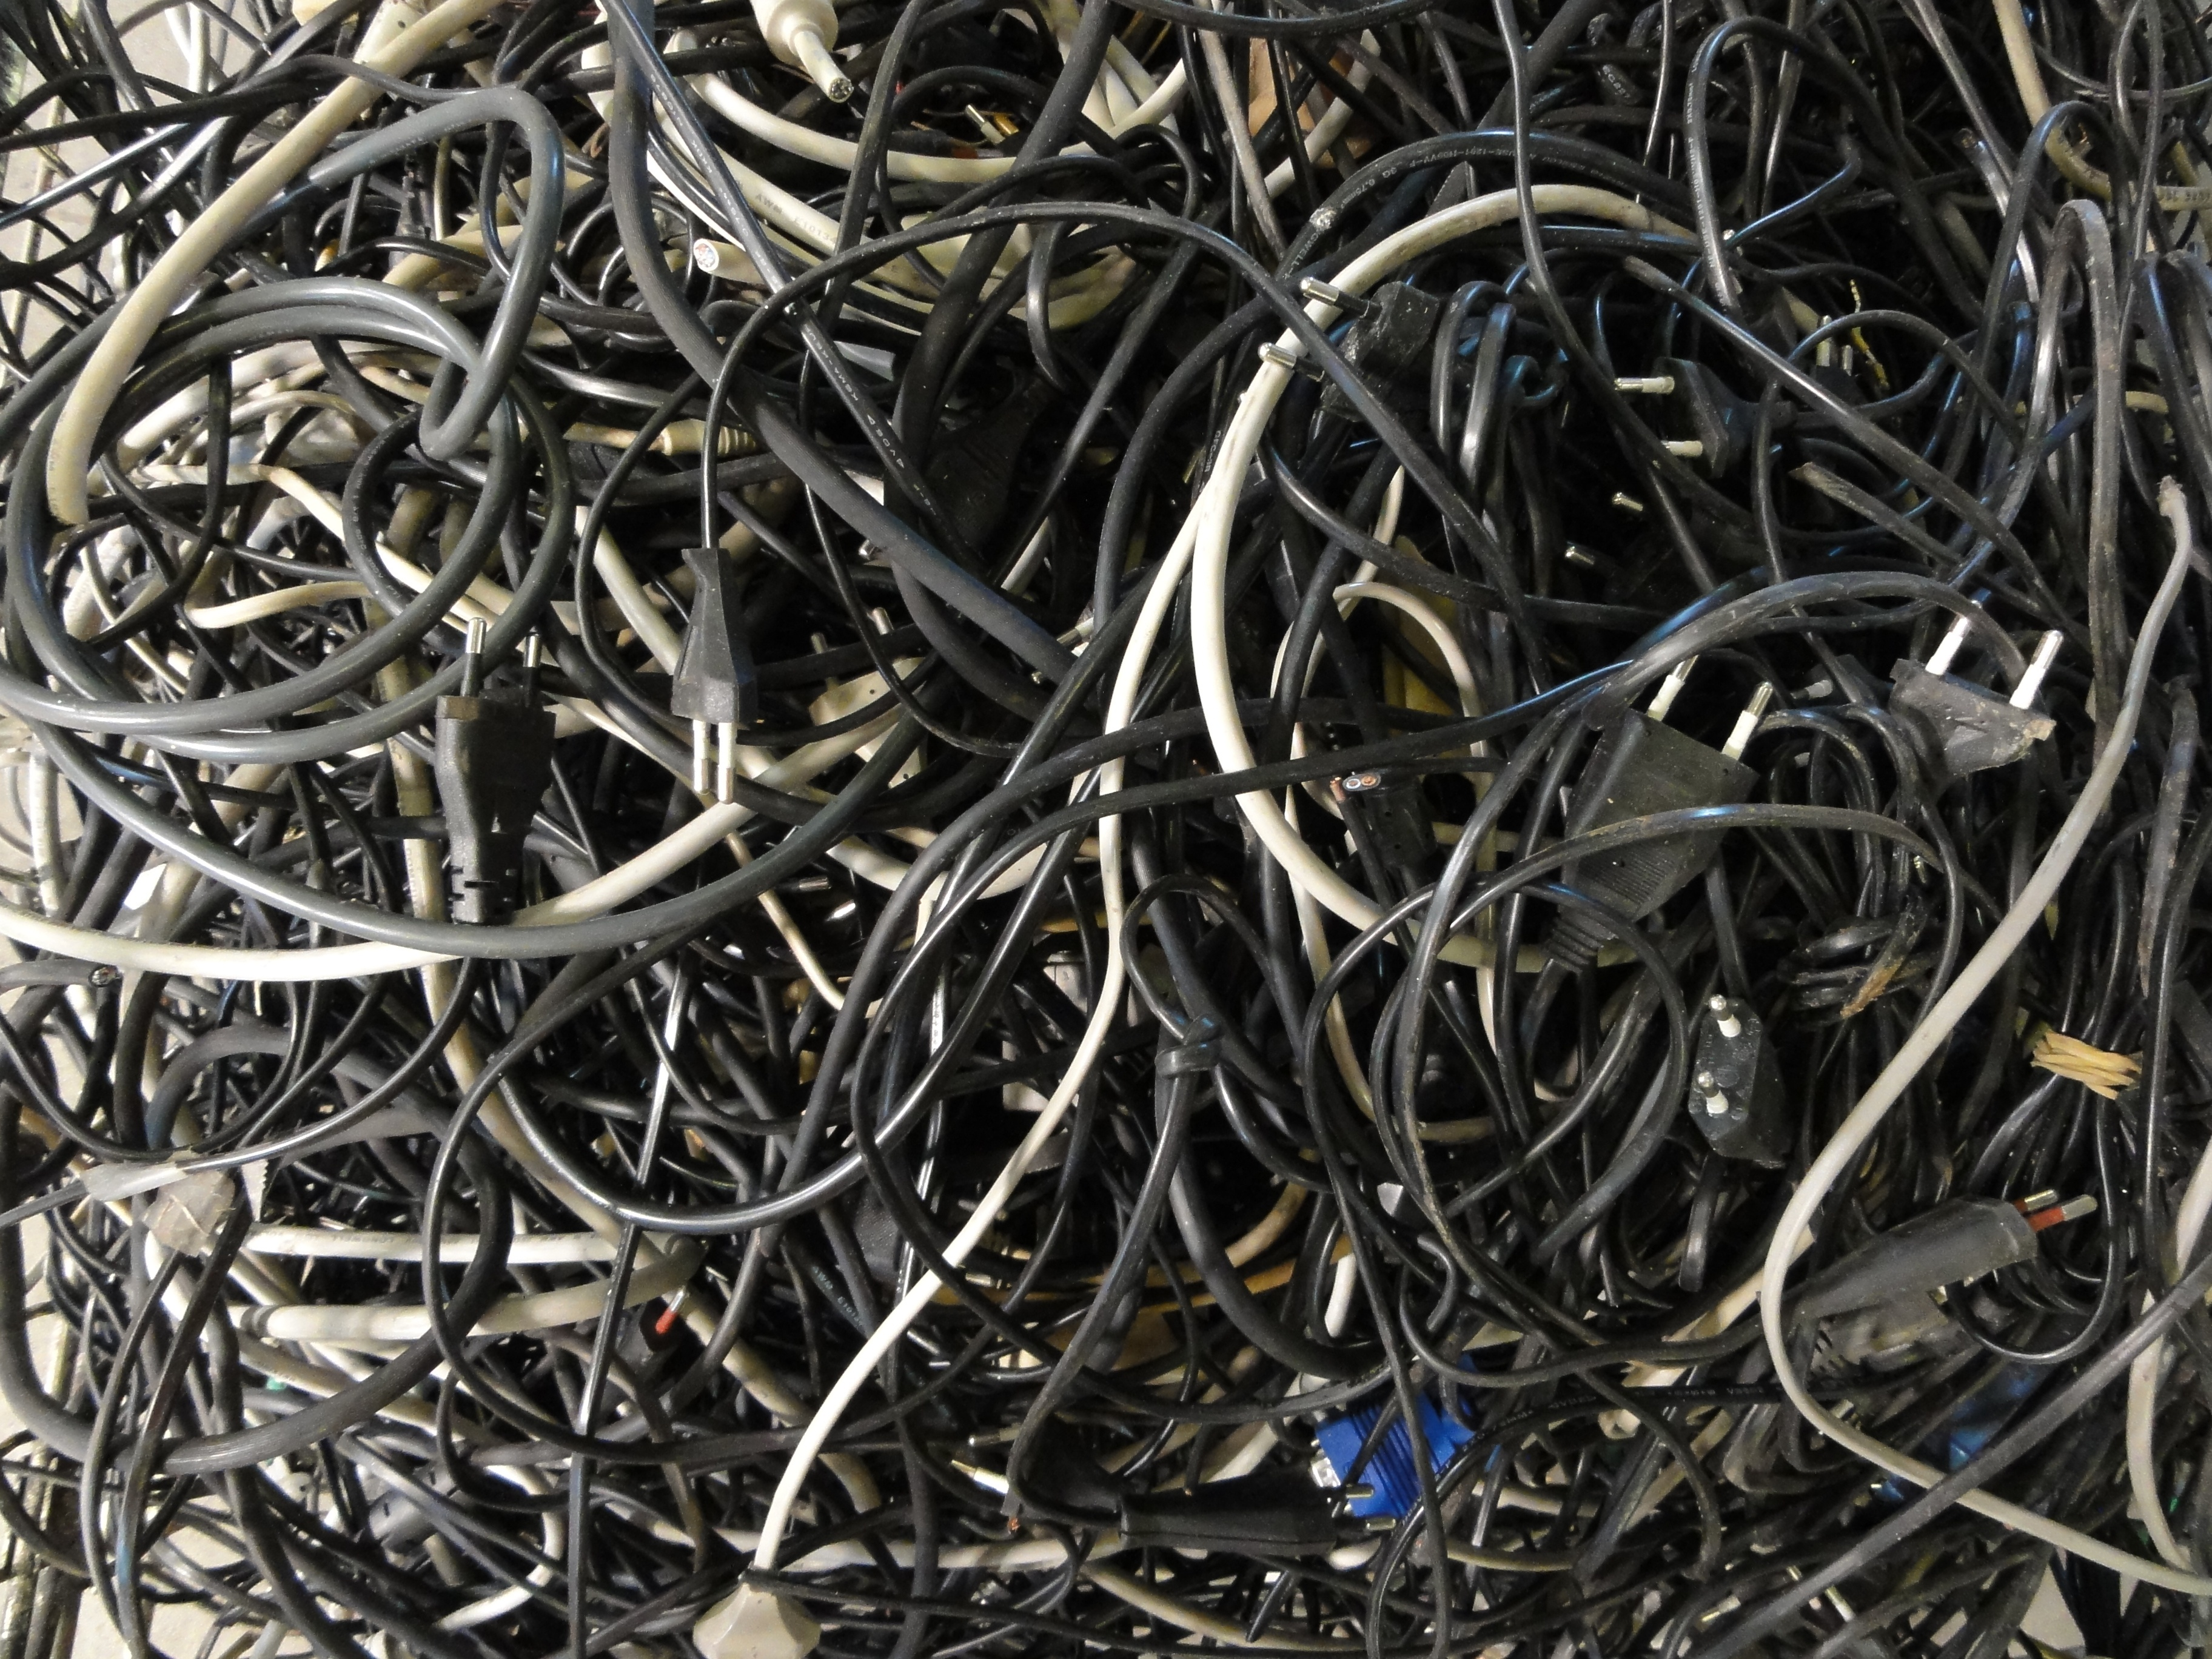 Cables sorting